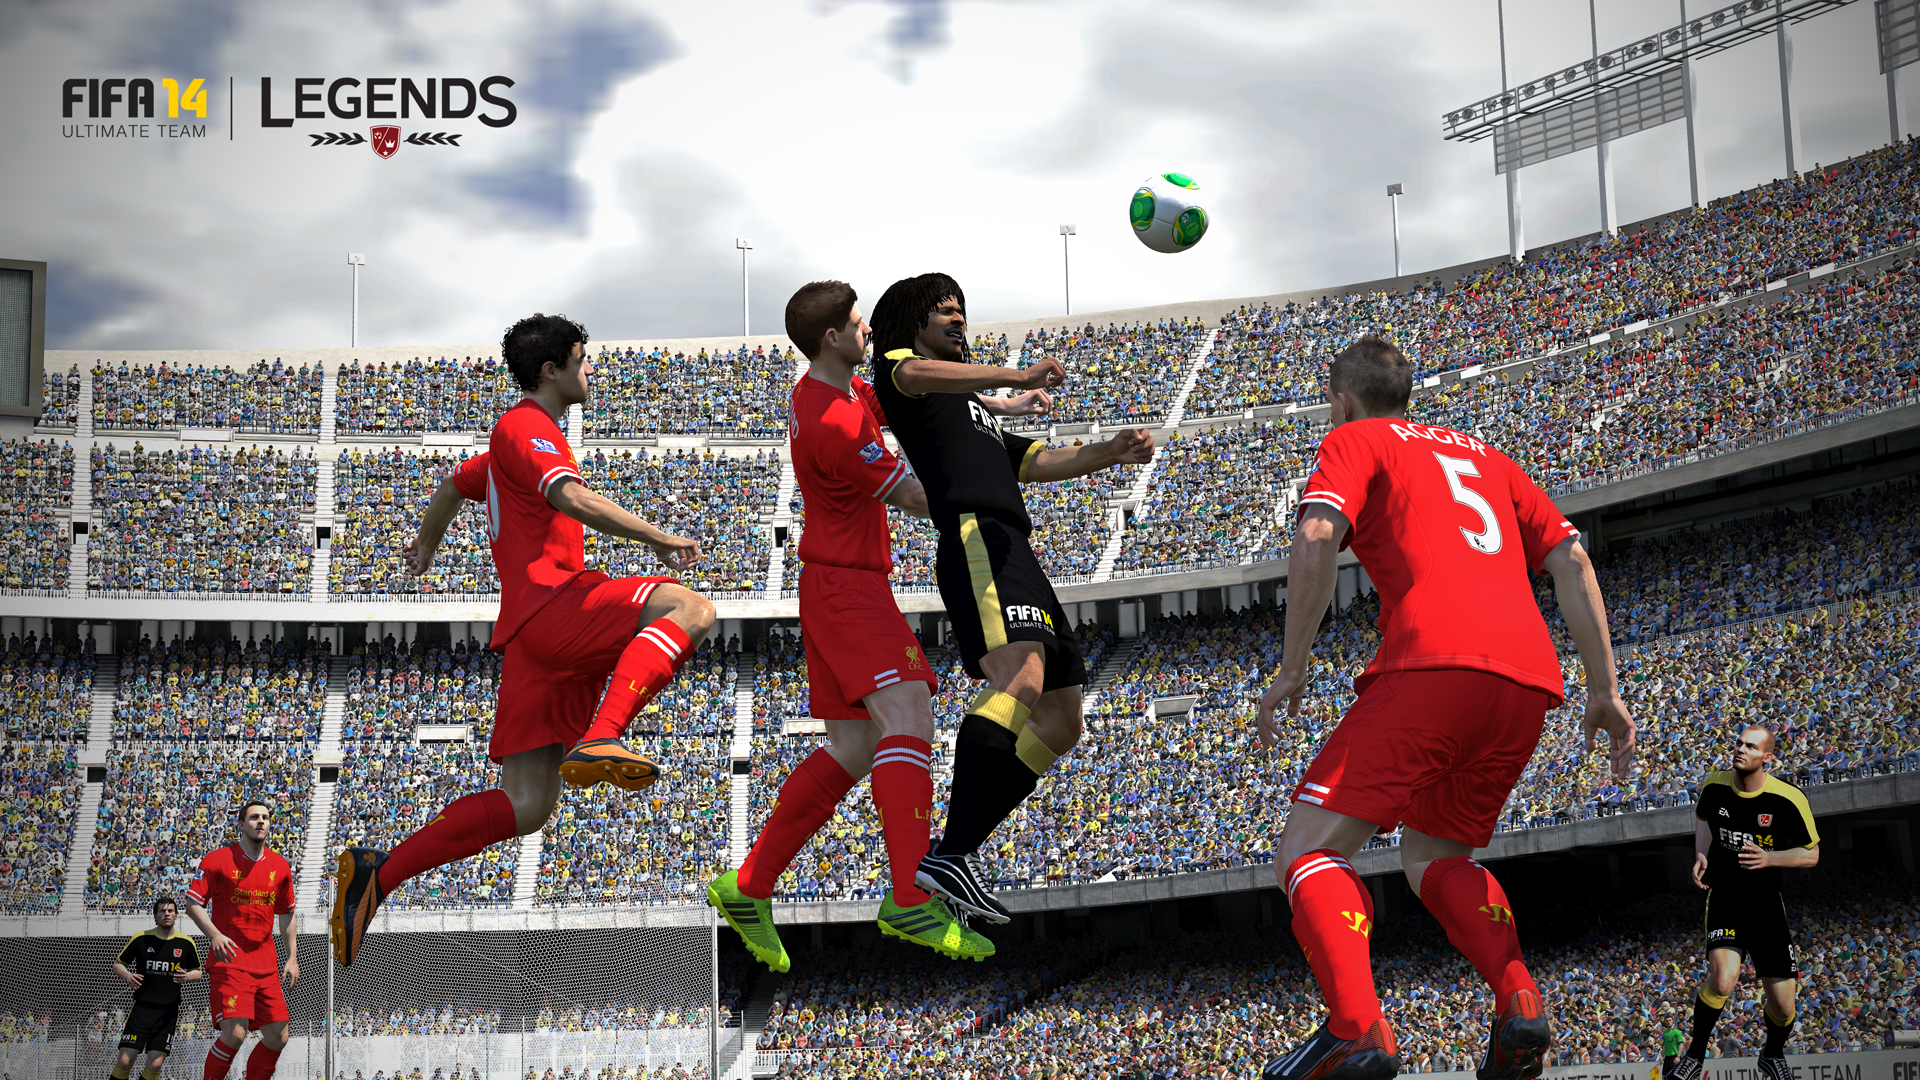 Real Madrid Fifa 14 Wallpaper For Fifa Soccer 14 Will be